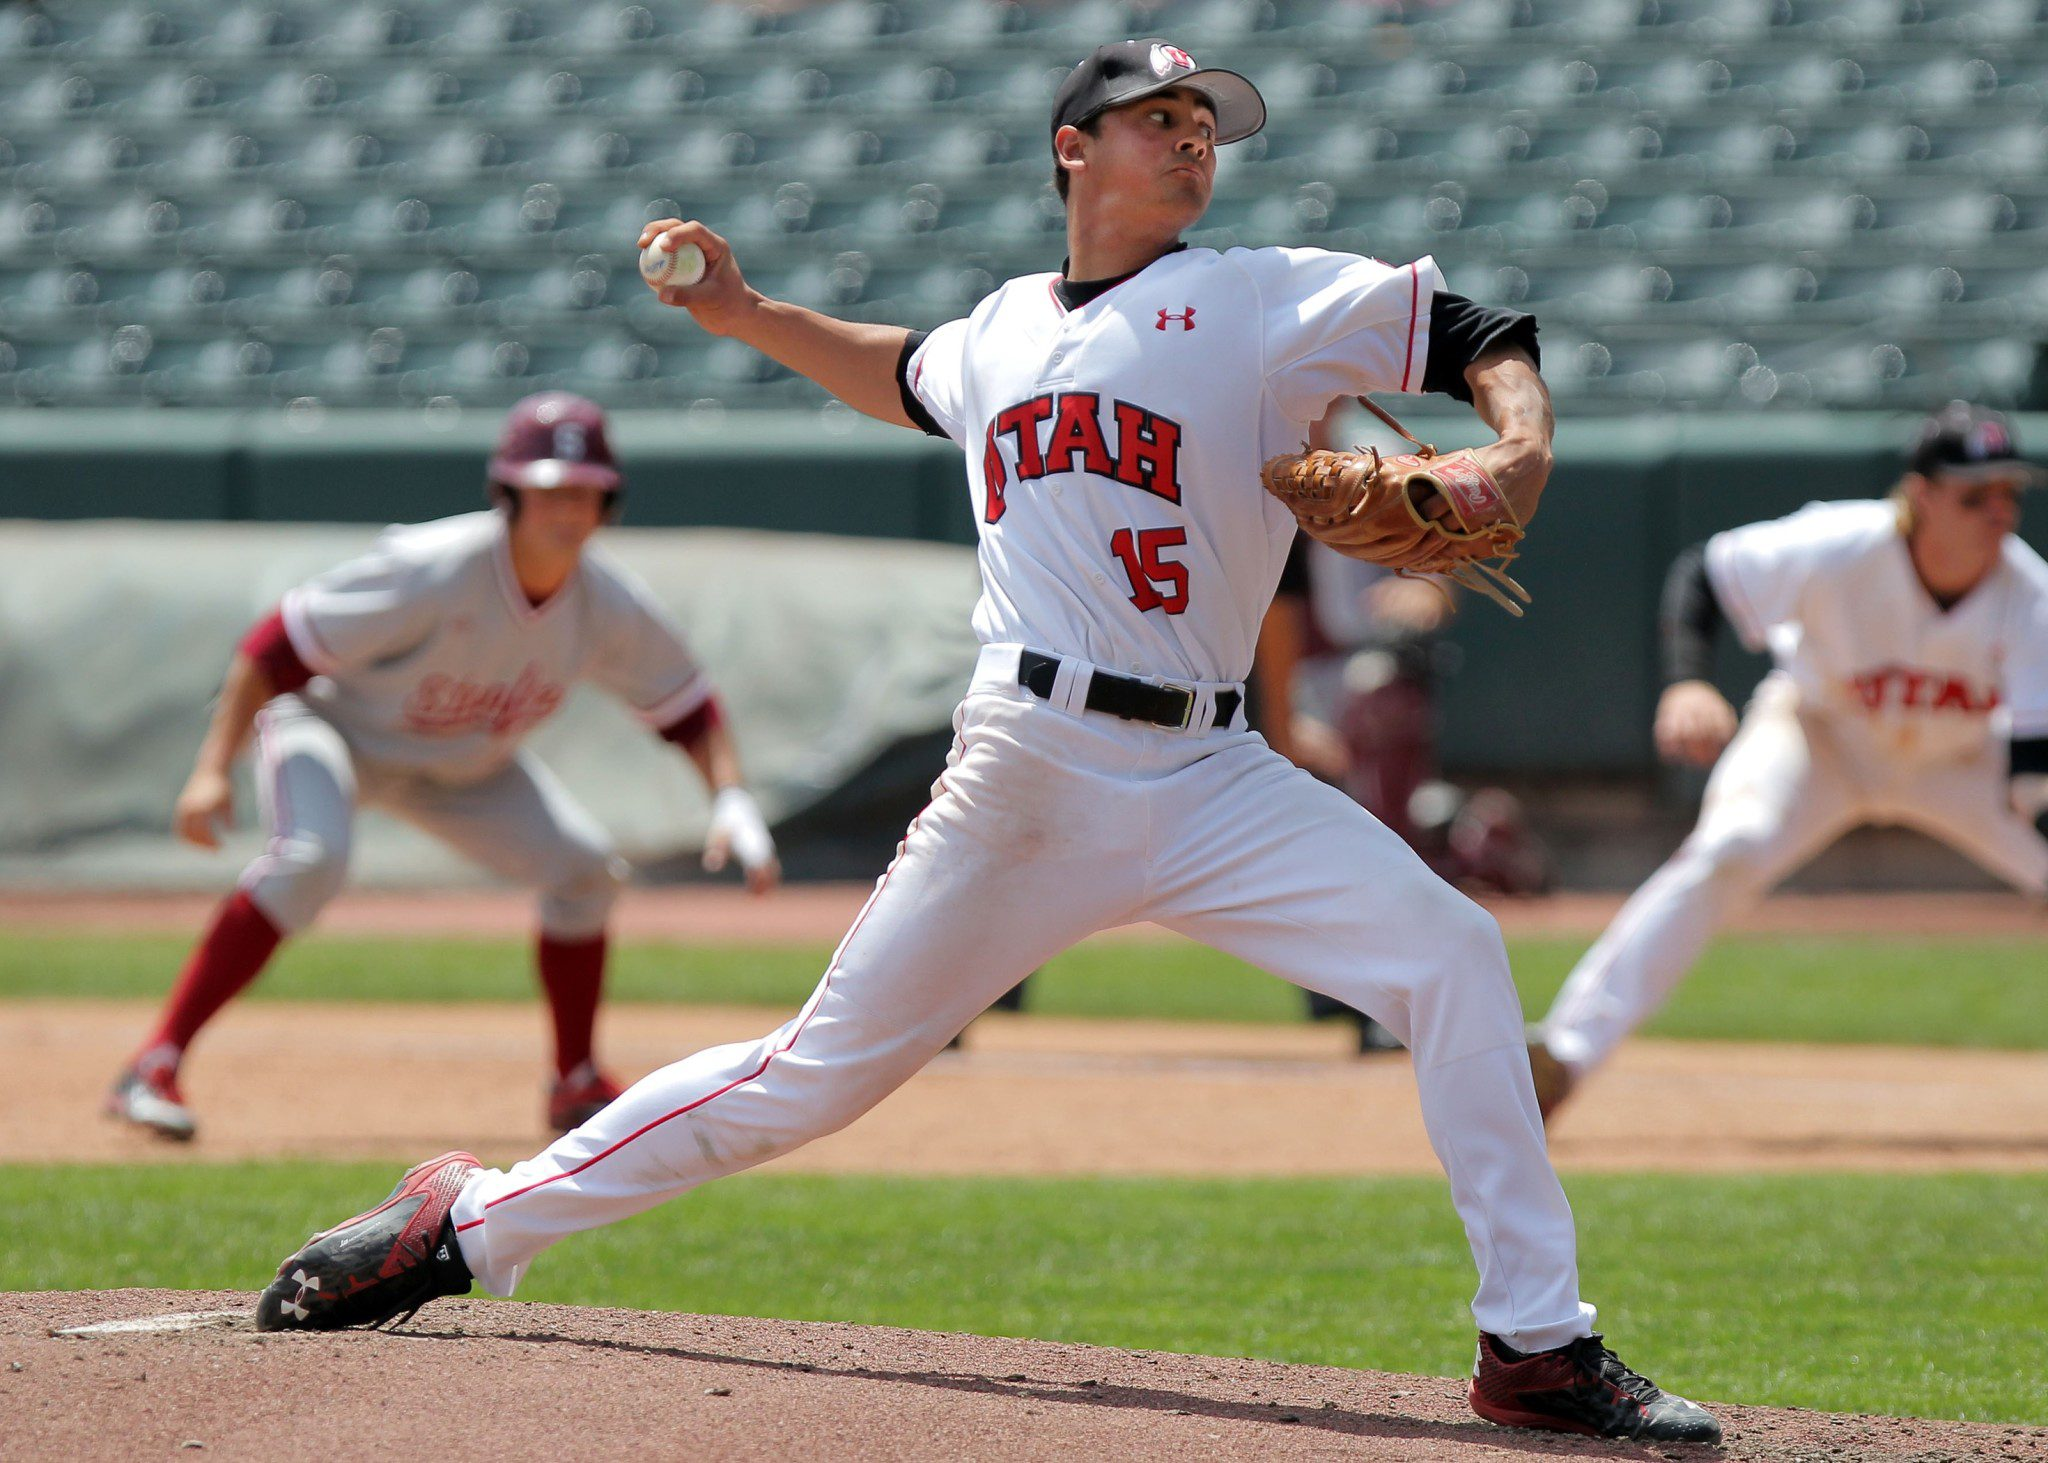 Utah ace Jayson Rose (Steve C. Wilson/University of Utah)